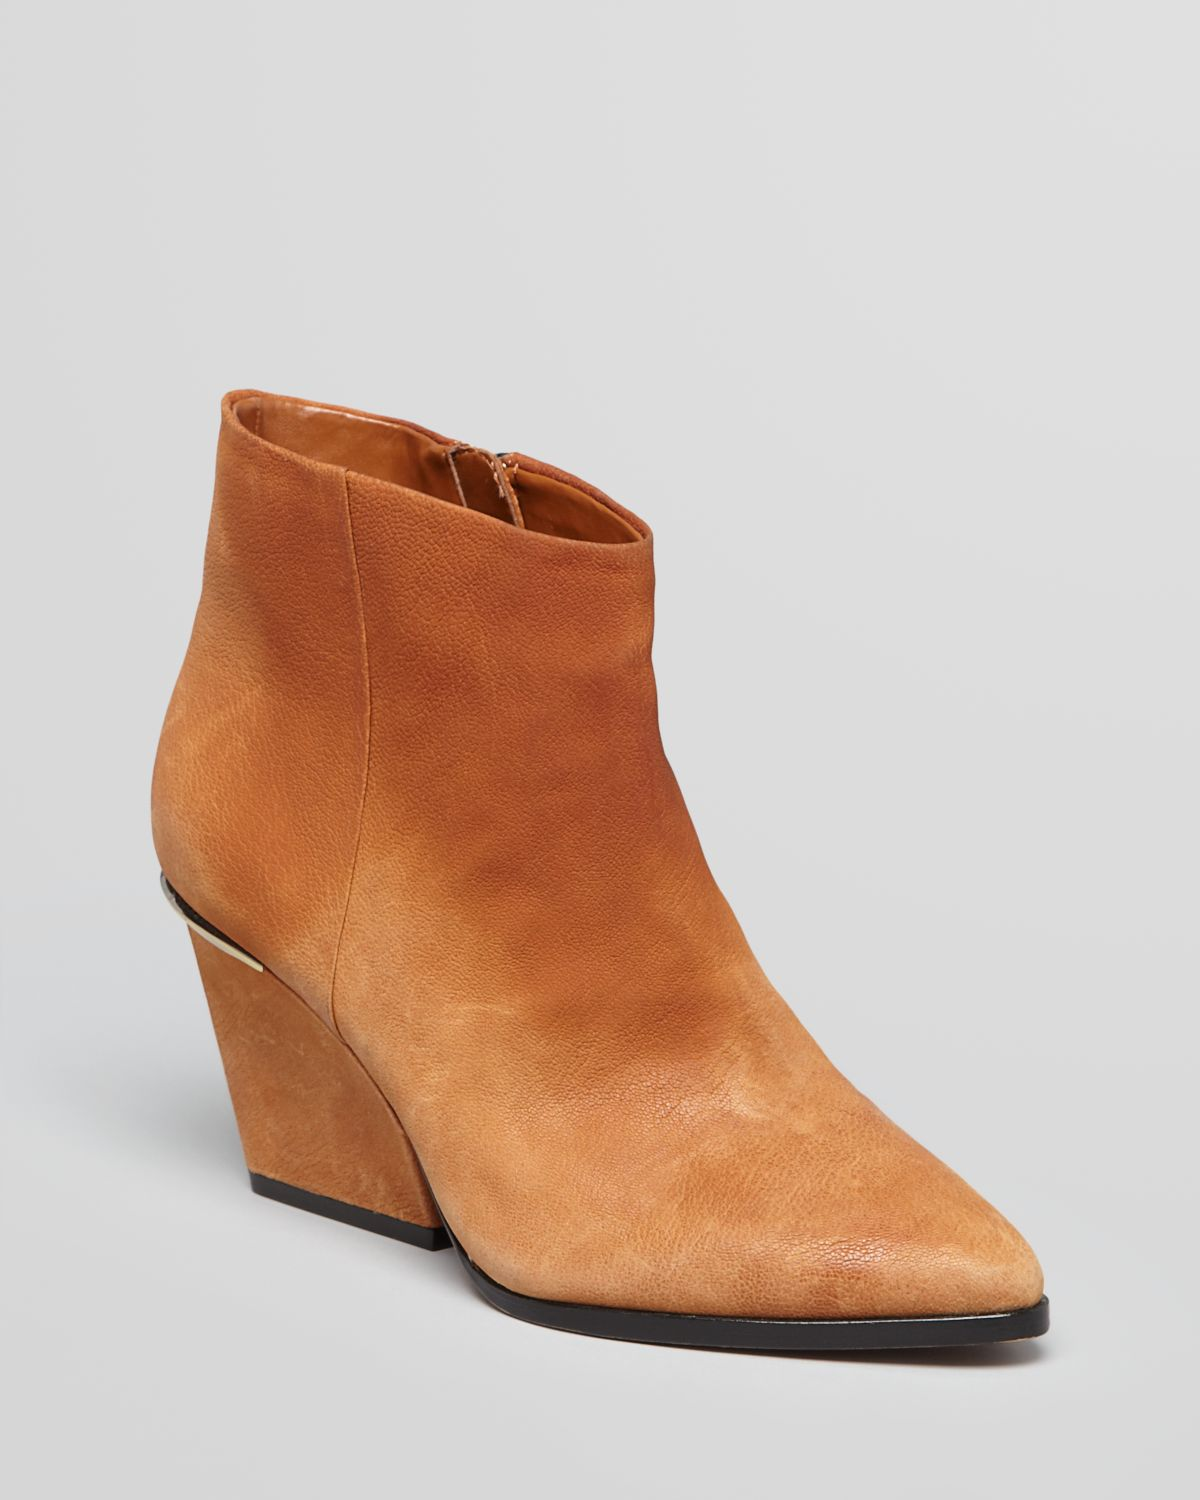 Boutique 9 Pointed Toe Wedge Booties - Isoke Low Heel | Bloomingdale's